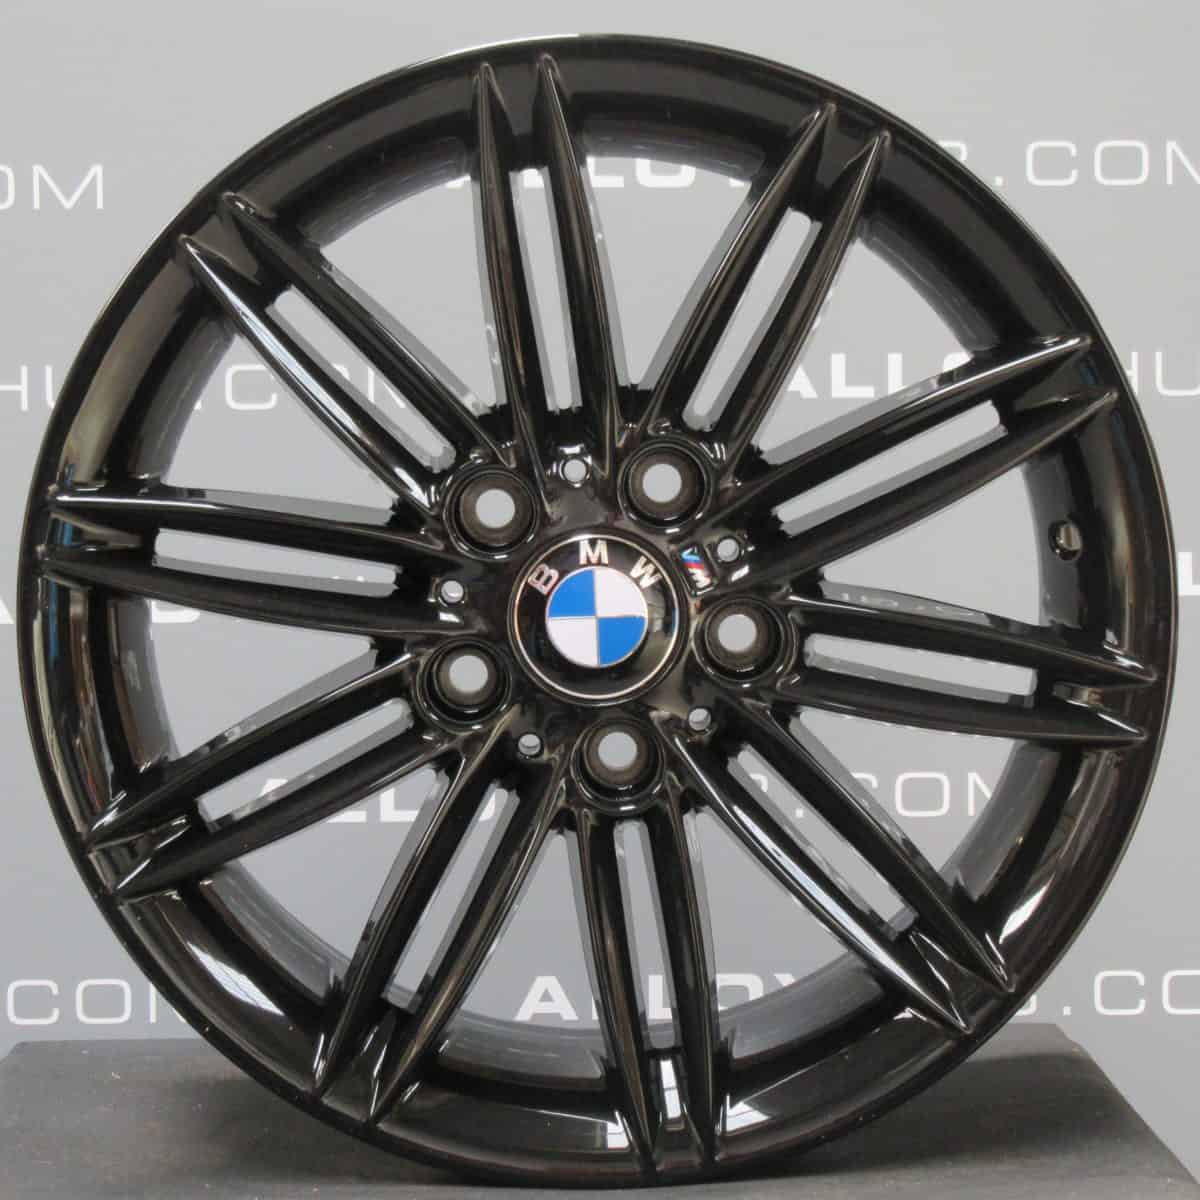 """Genuine BMW 1 Series 207M Sport 10 Double Spoke 17"""" Inch Alloy Wheels with Gloss Black Finish 36118036937 36118036938"""